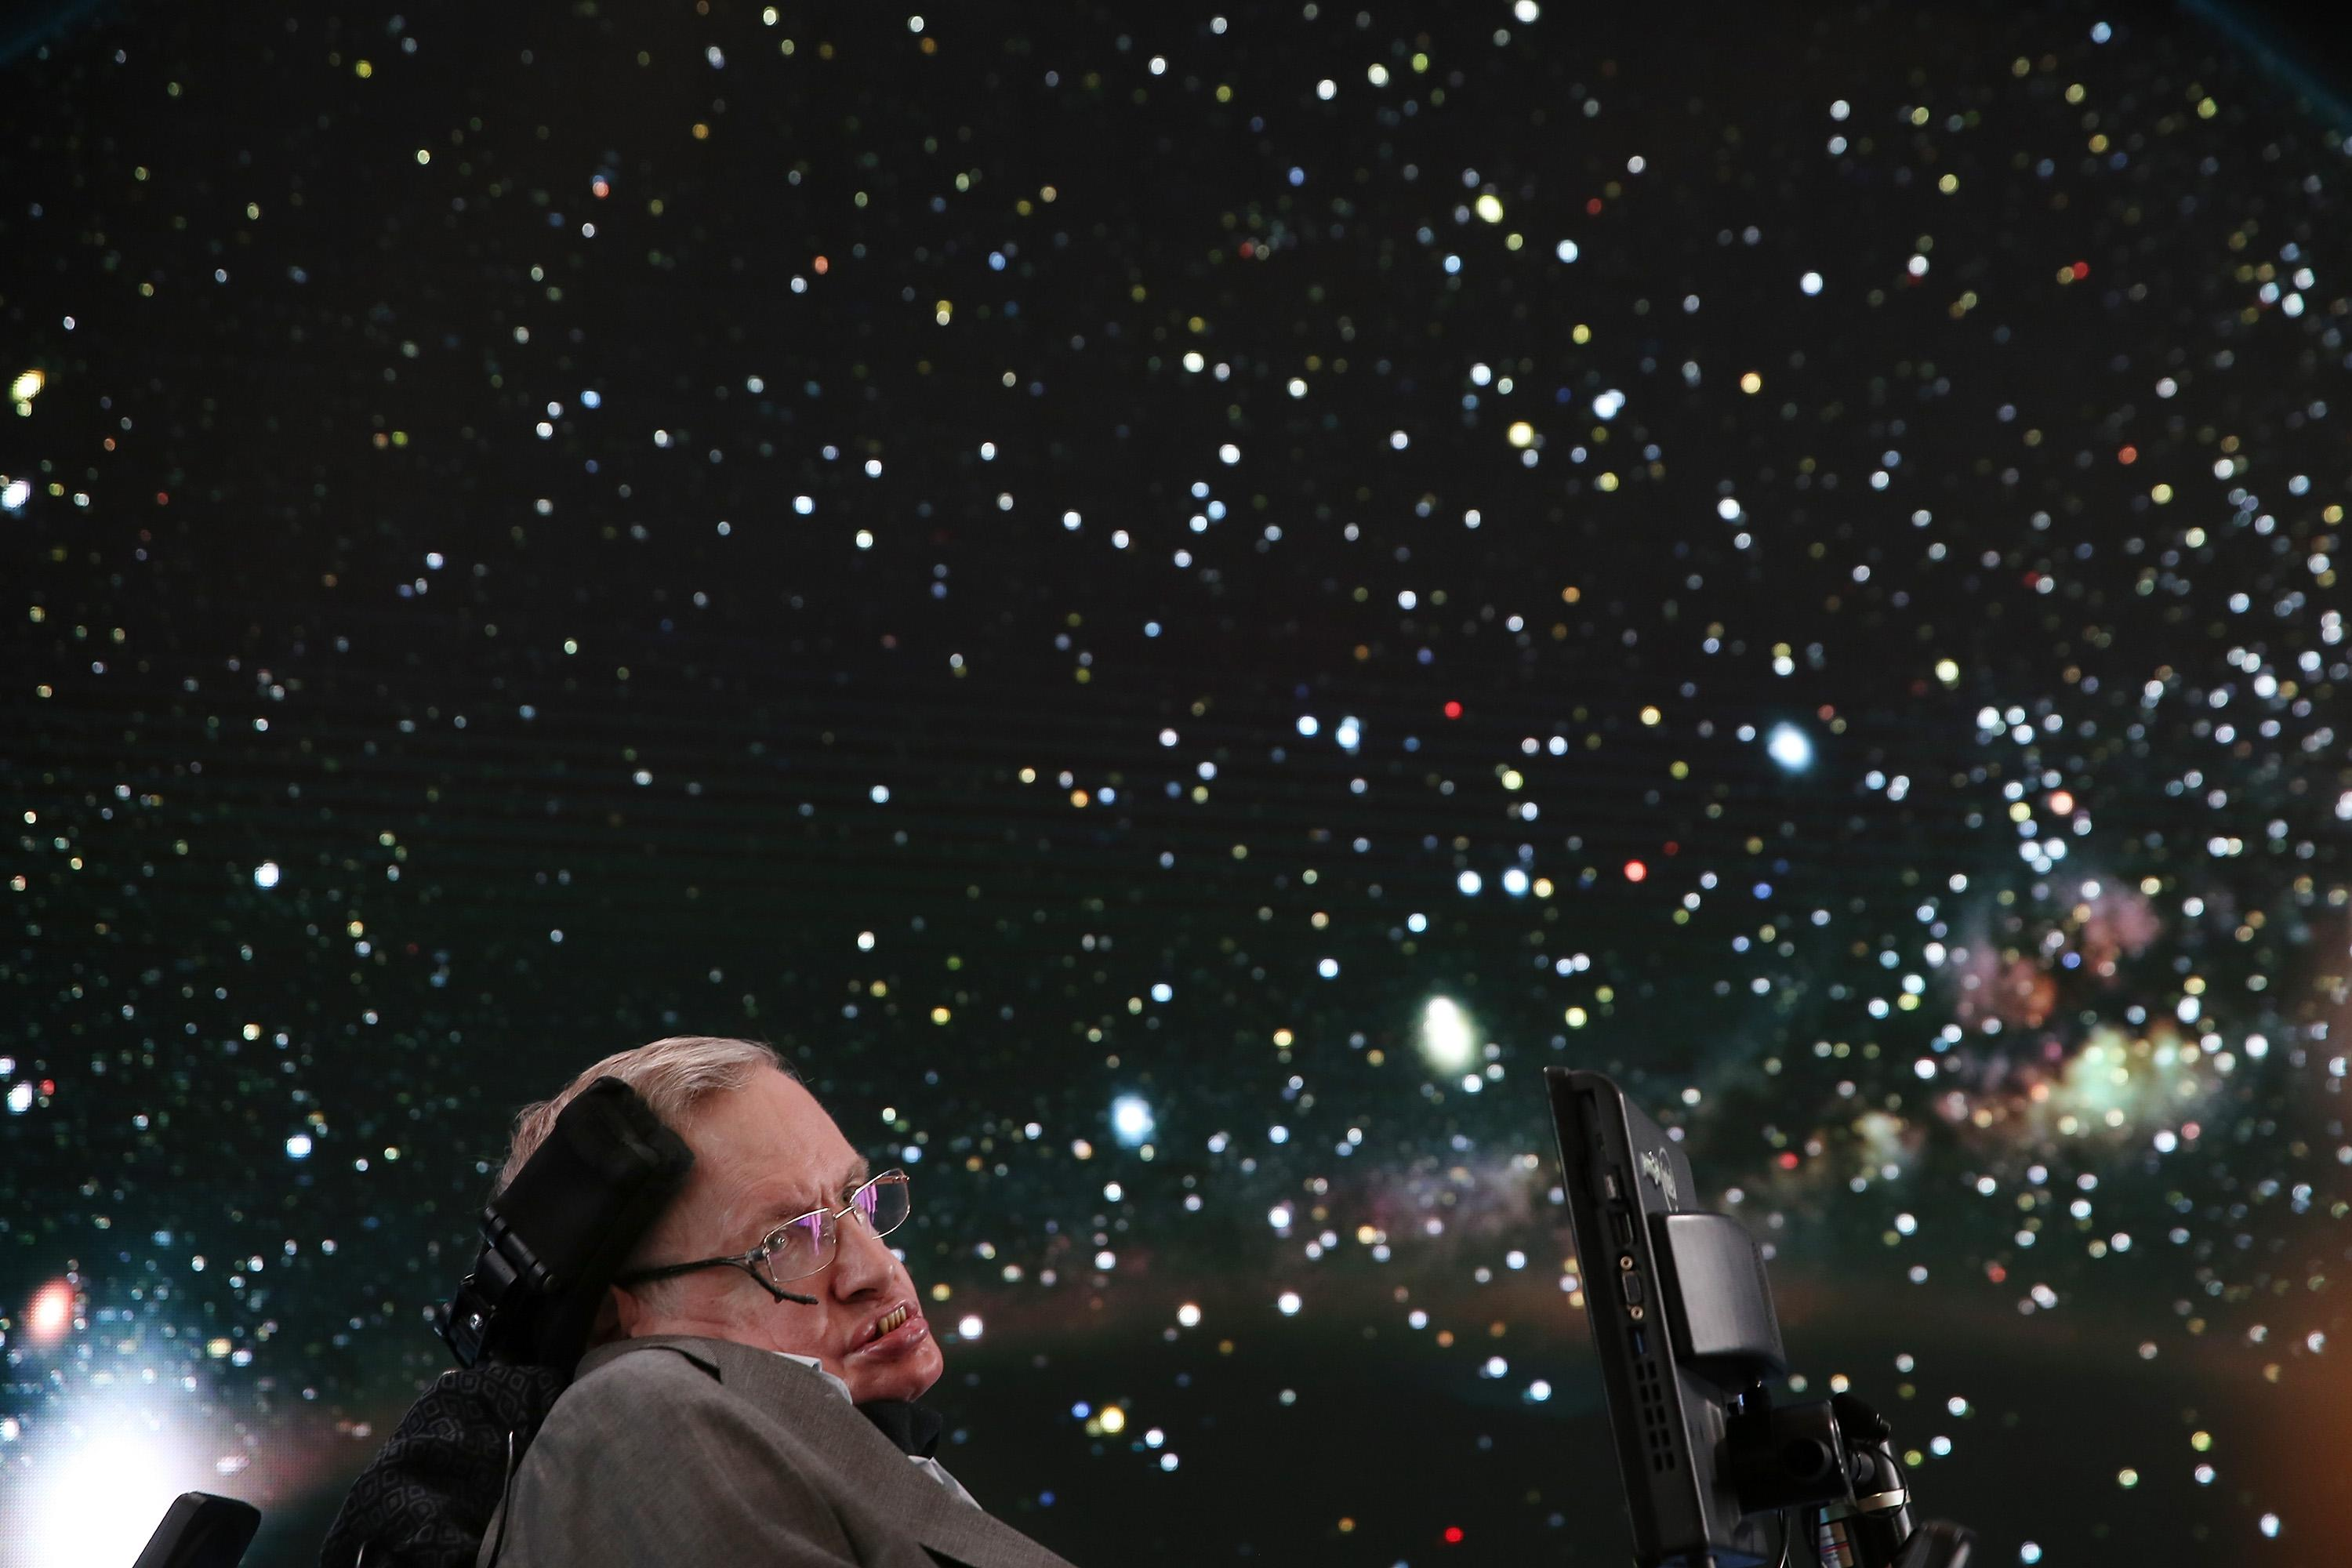 Stephen Hawking speaking in New York in 2016.